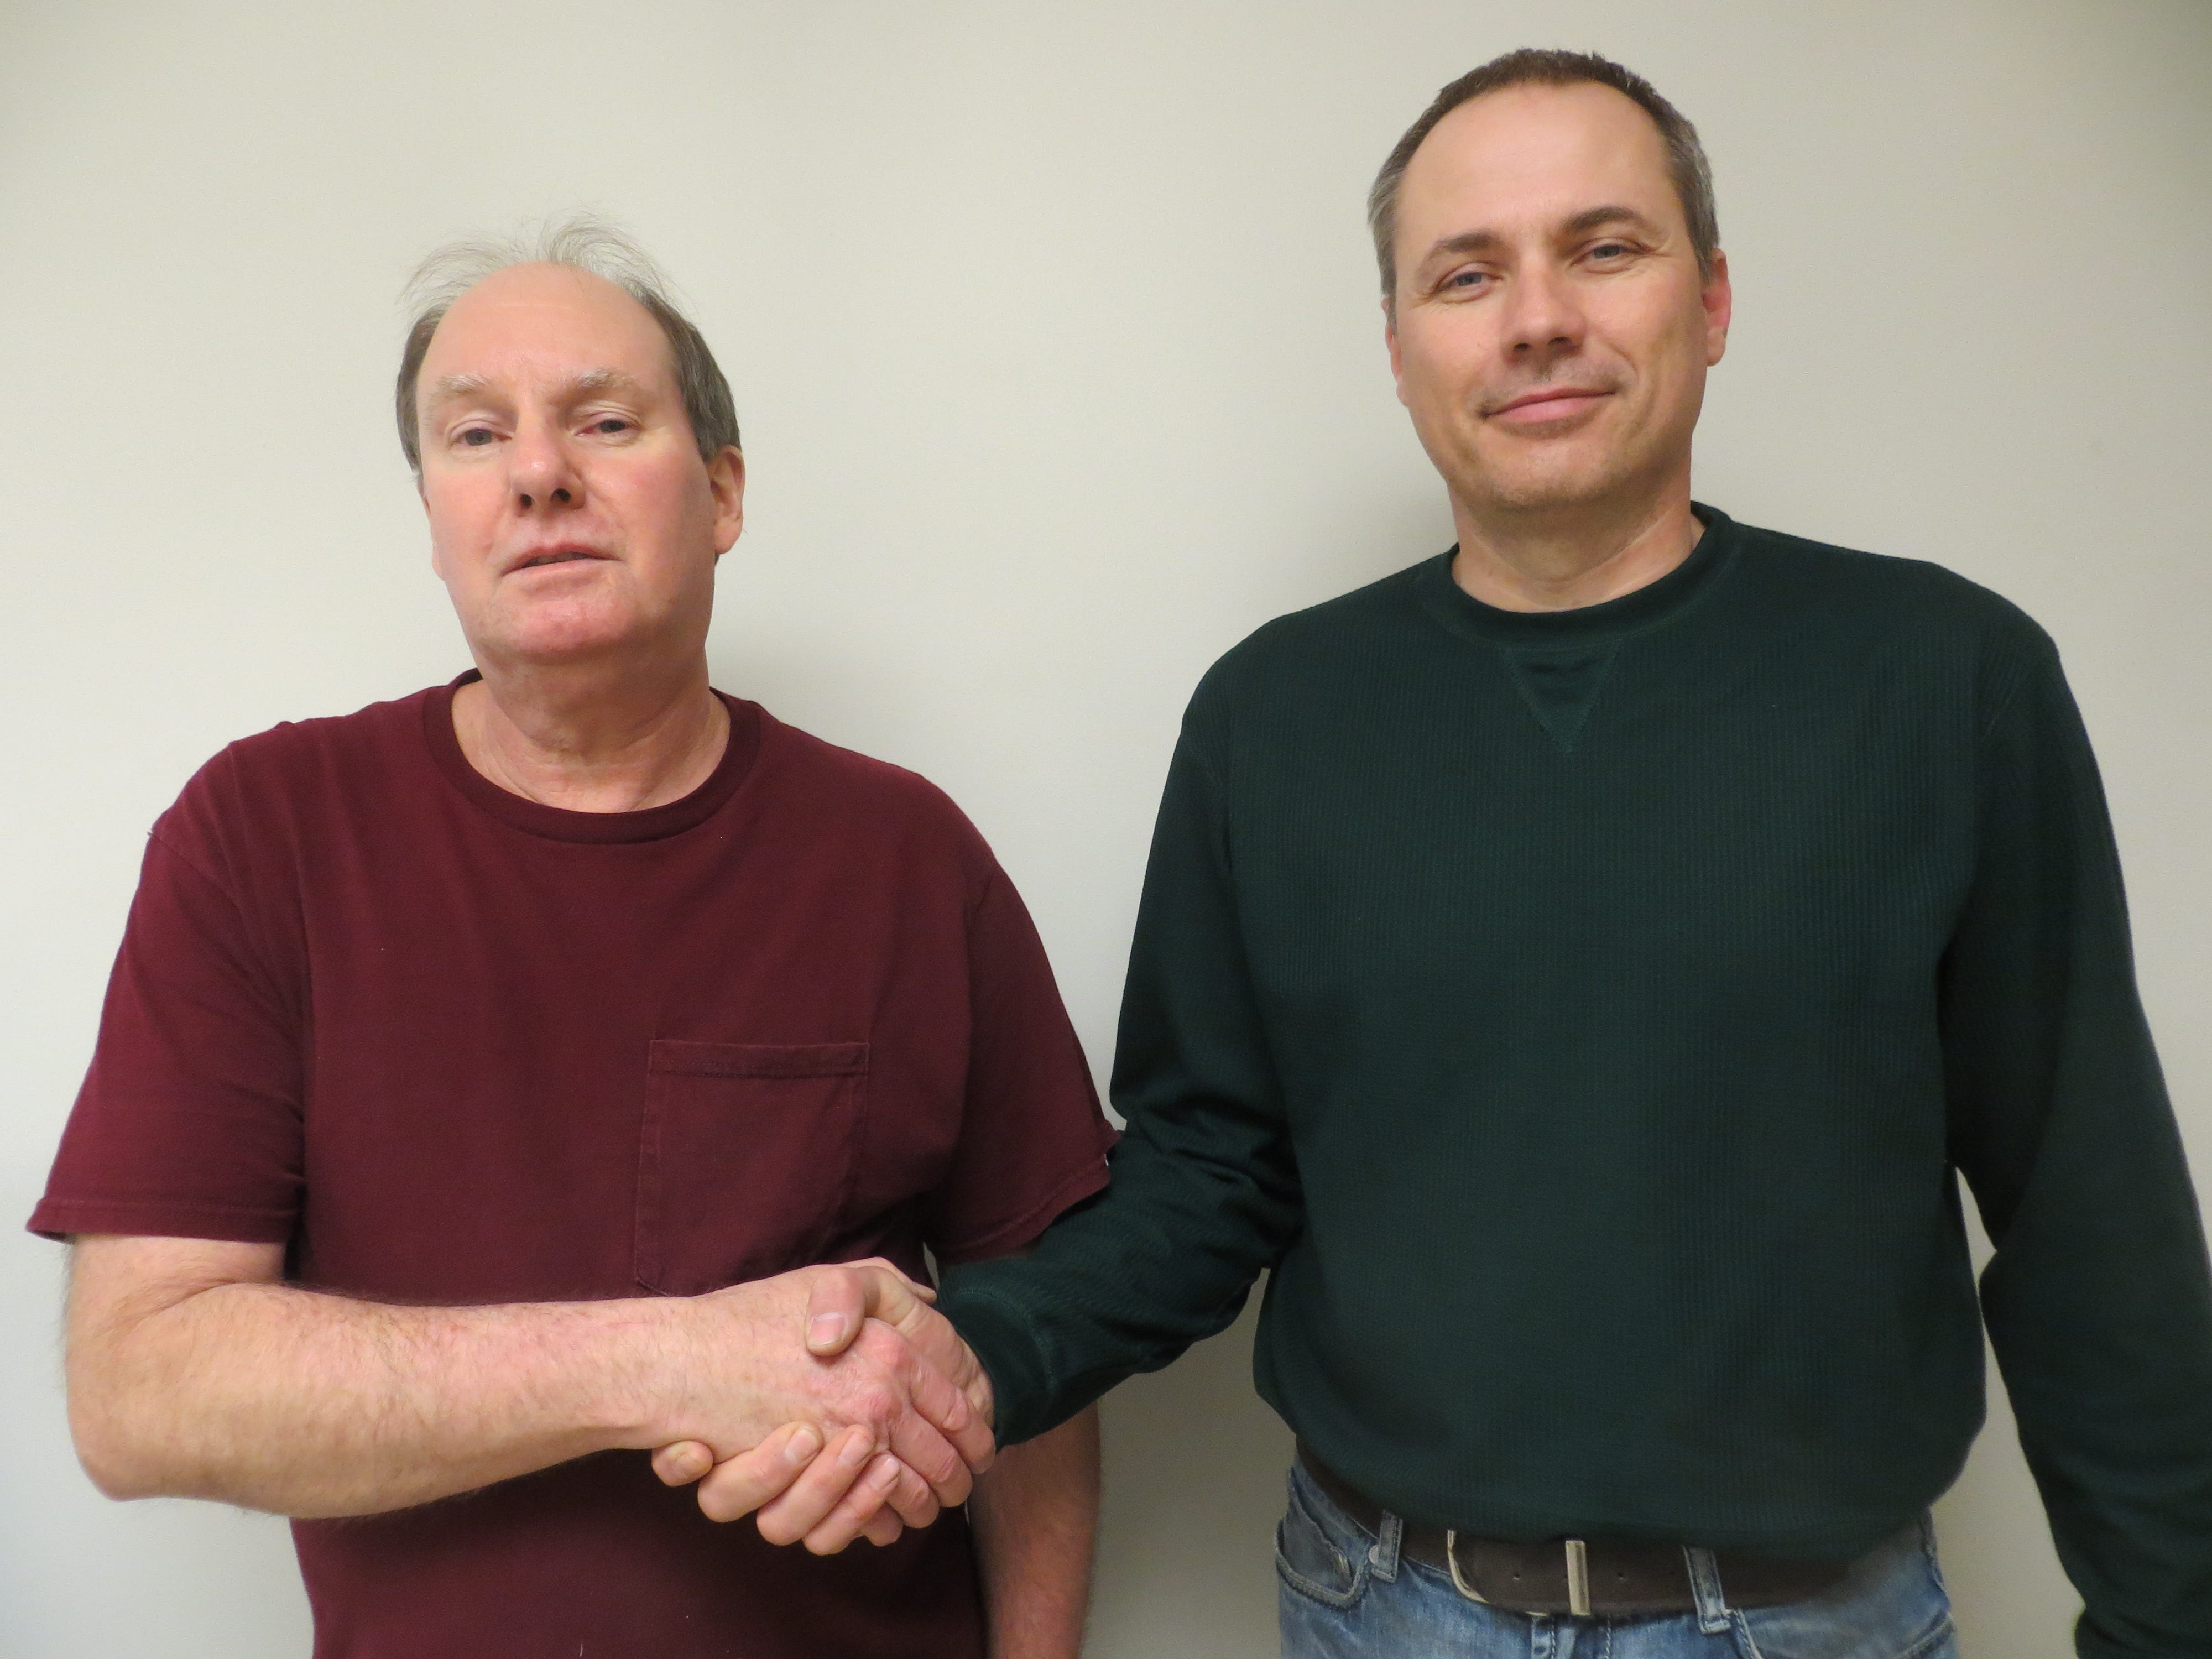 D.L. Martin Co.\u0027s Employee of the Month John Miller  sc 1 st  Chambersburg Public Opinion & Biz news: Jamison Door moving part of business to Franklin Co.